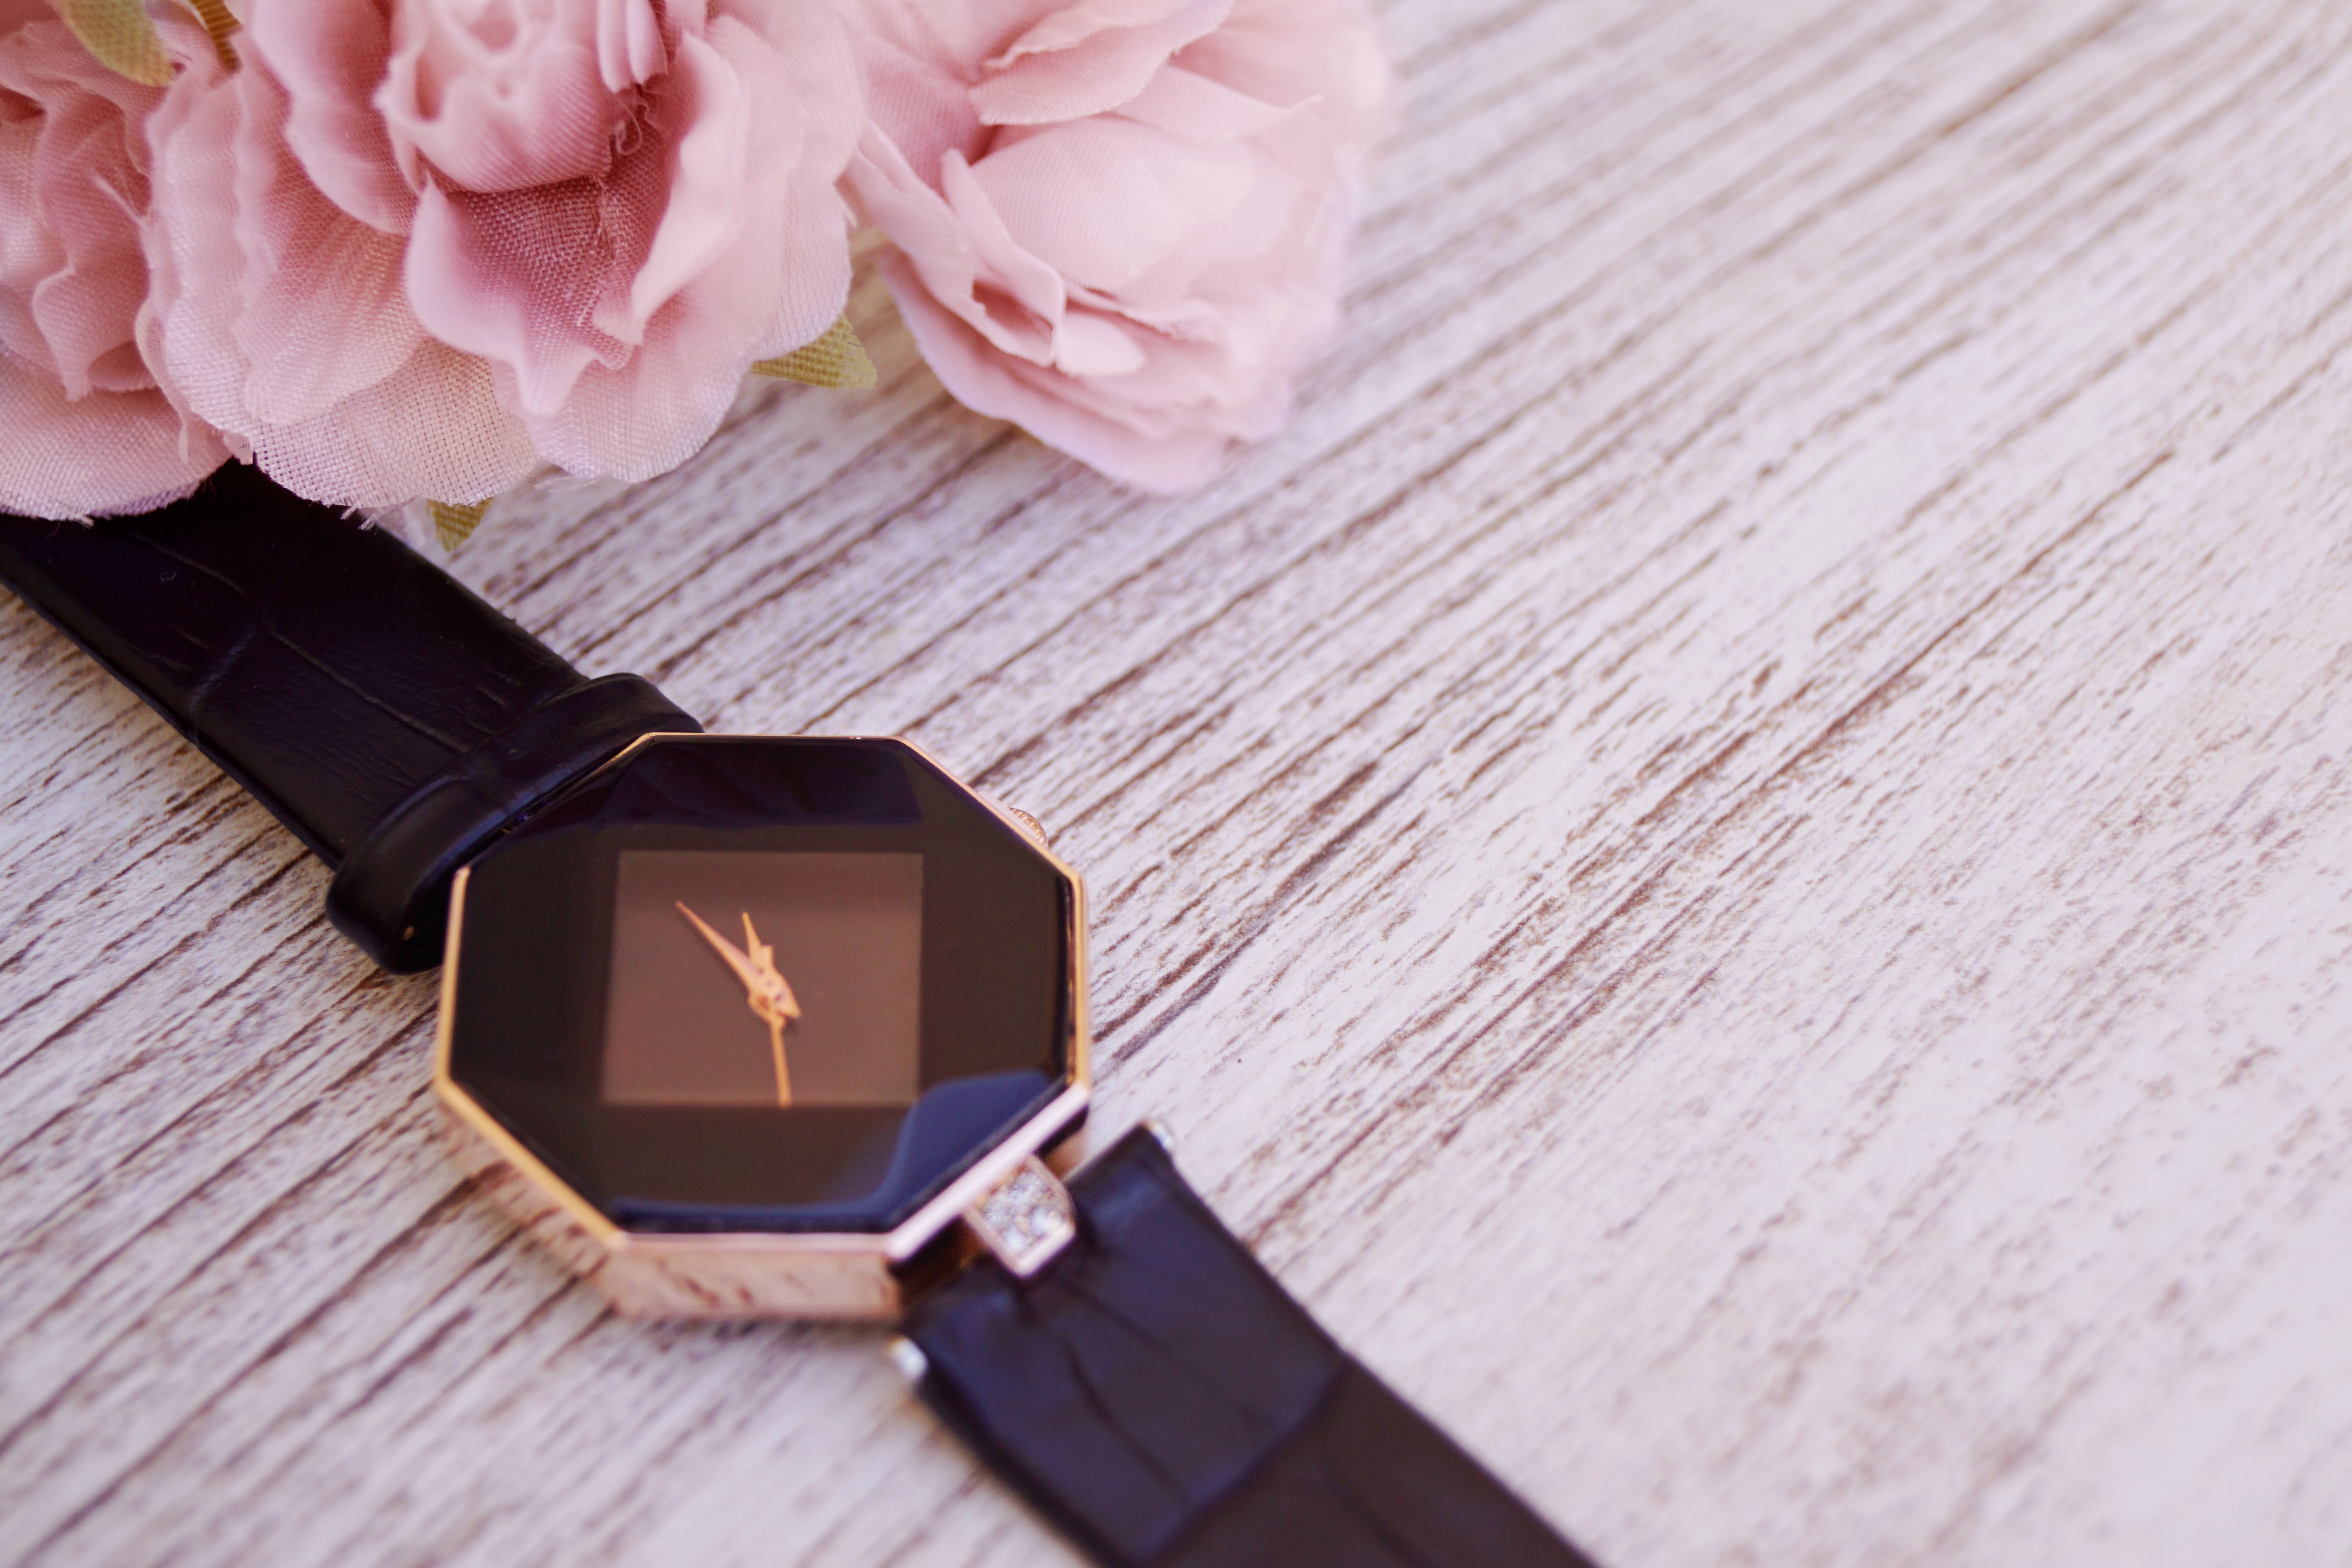 Gold-colored Analog Watch on Beige Wood Surface